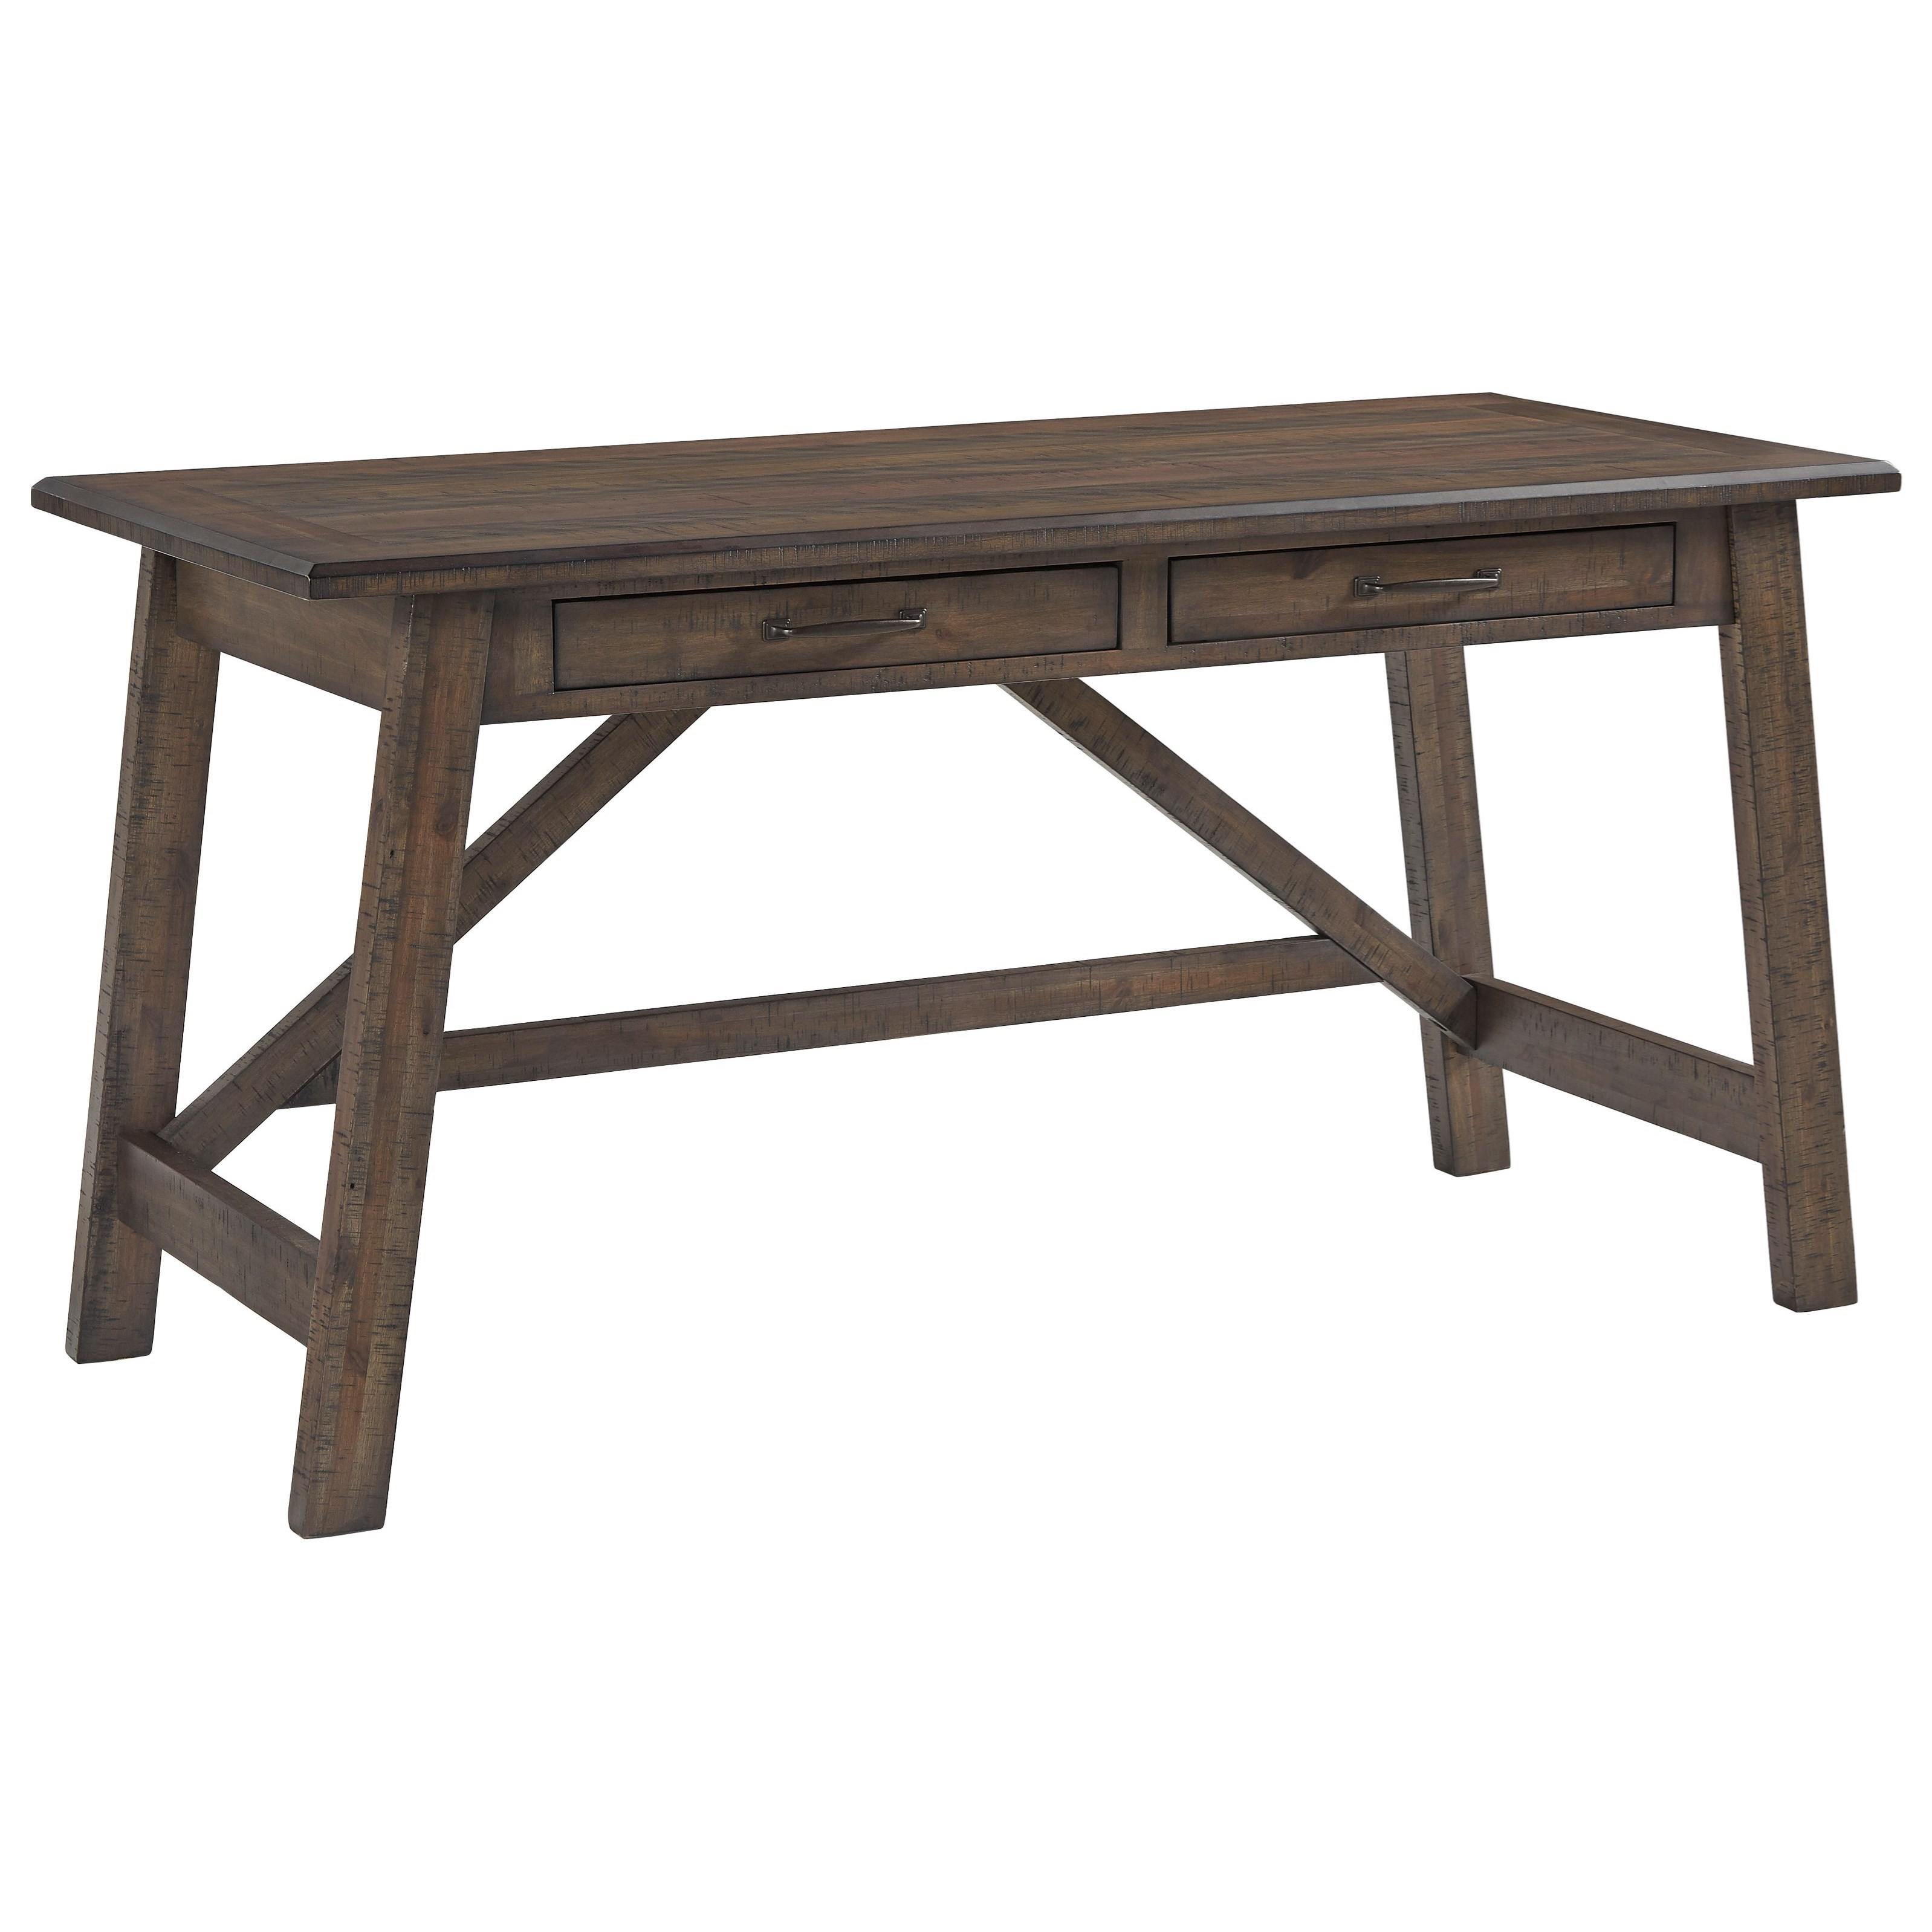 Johurst Home Office Large Leg Desk by Signature Design by Ashley at VanDrie Home Furnishings